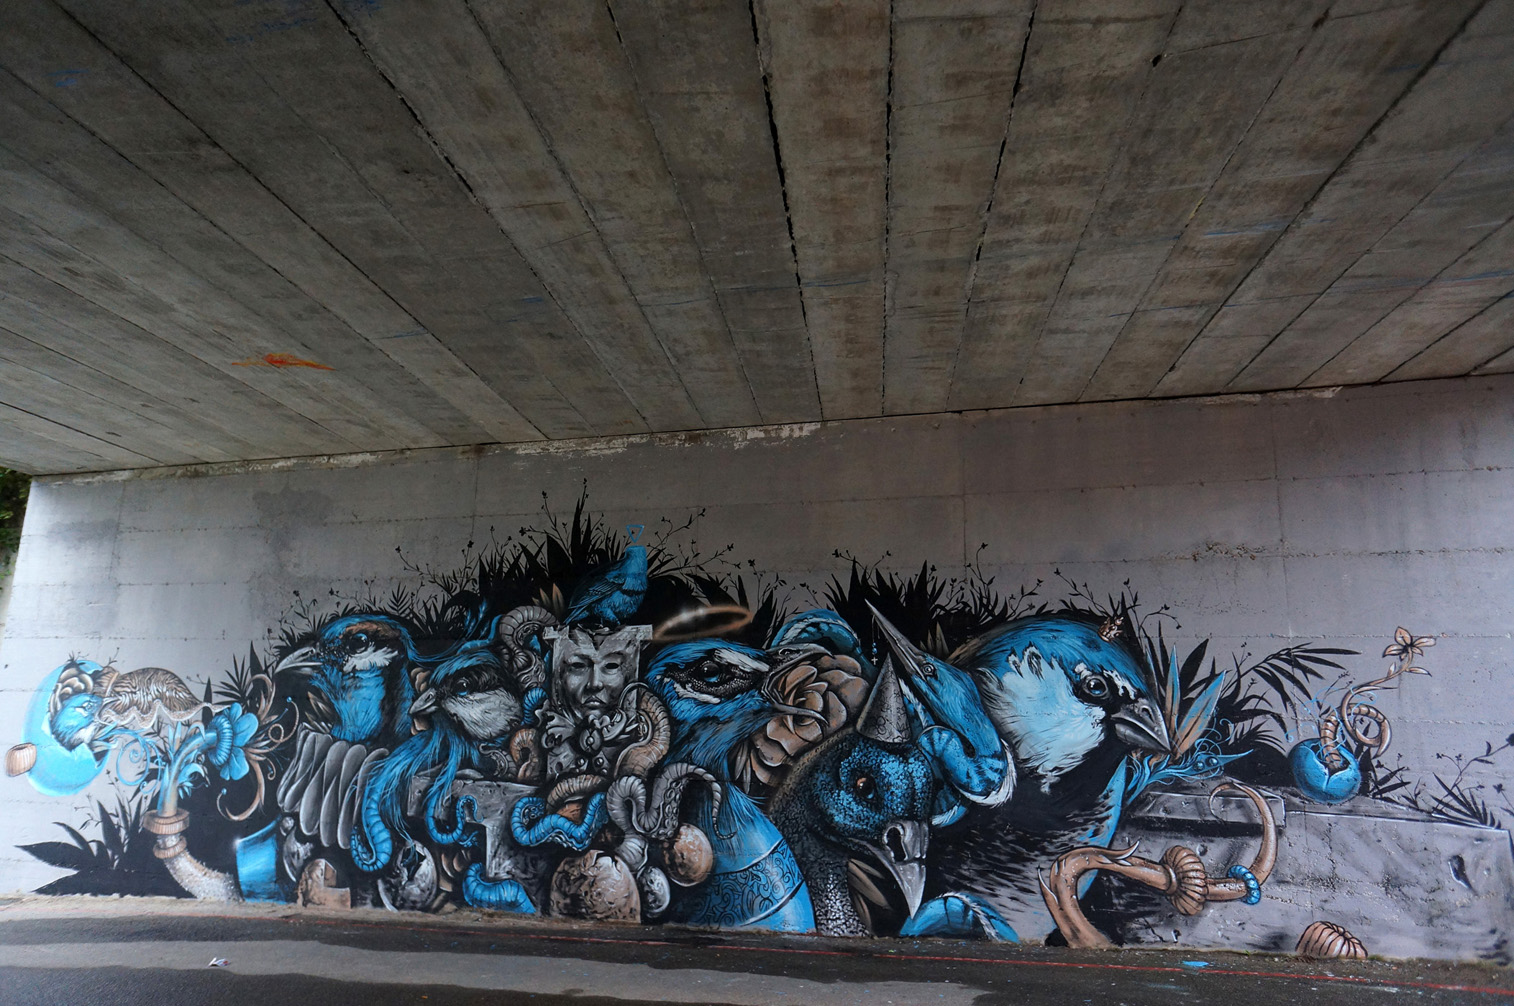 kraser-new-mural-for-urban-canvas-in-varese-01